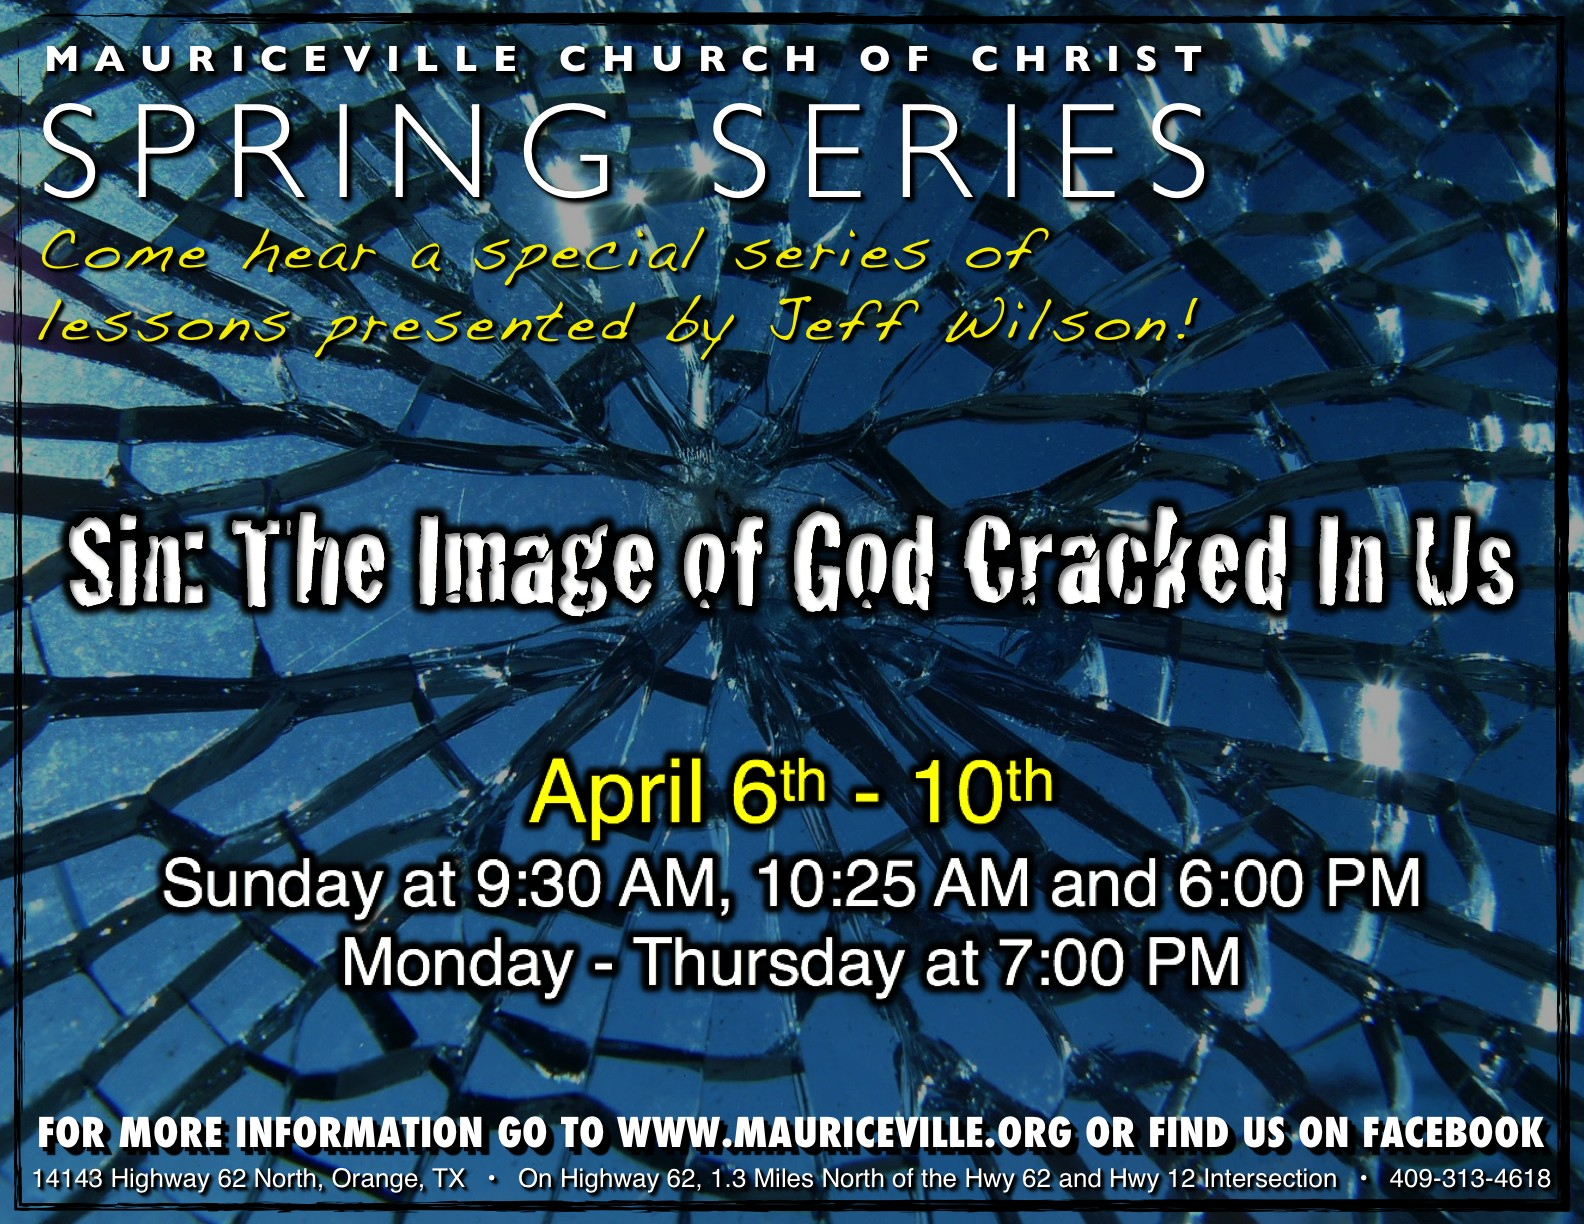 Spring Series 2014 with Jeff Wilson